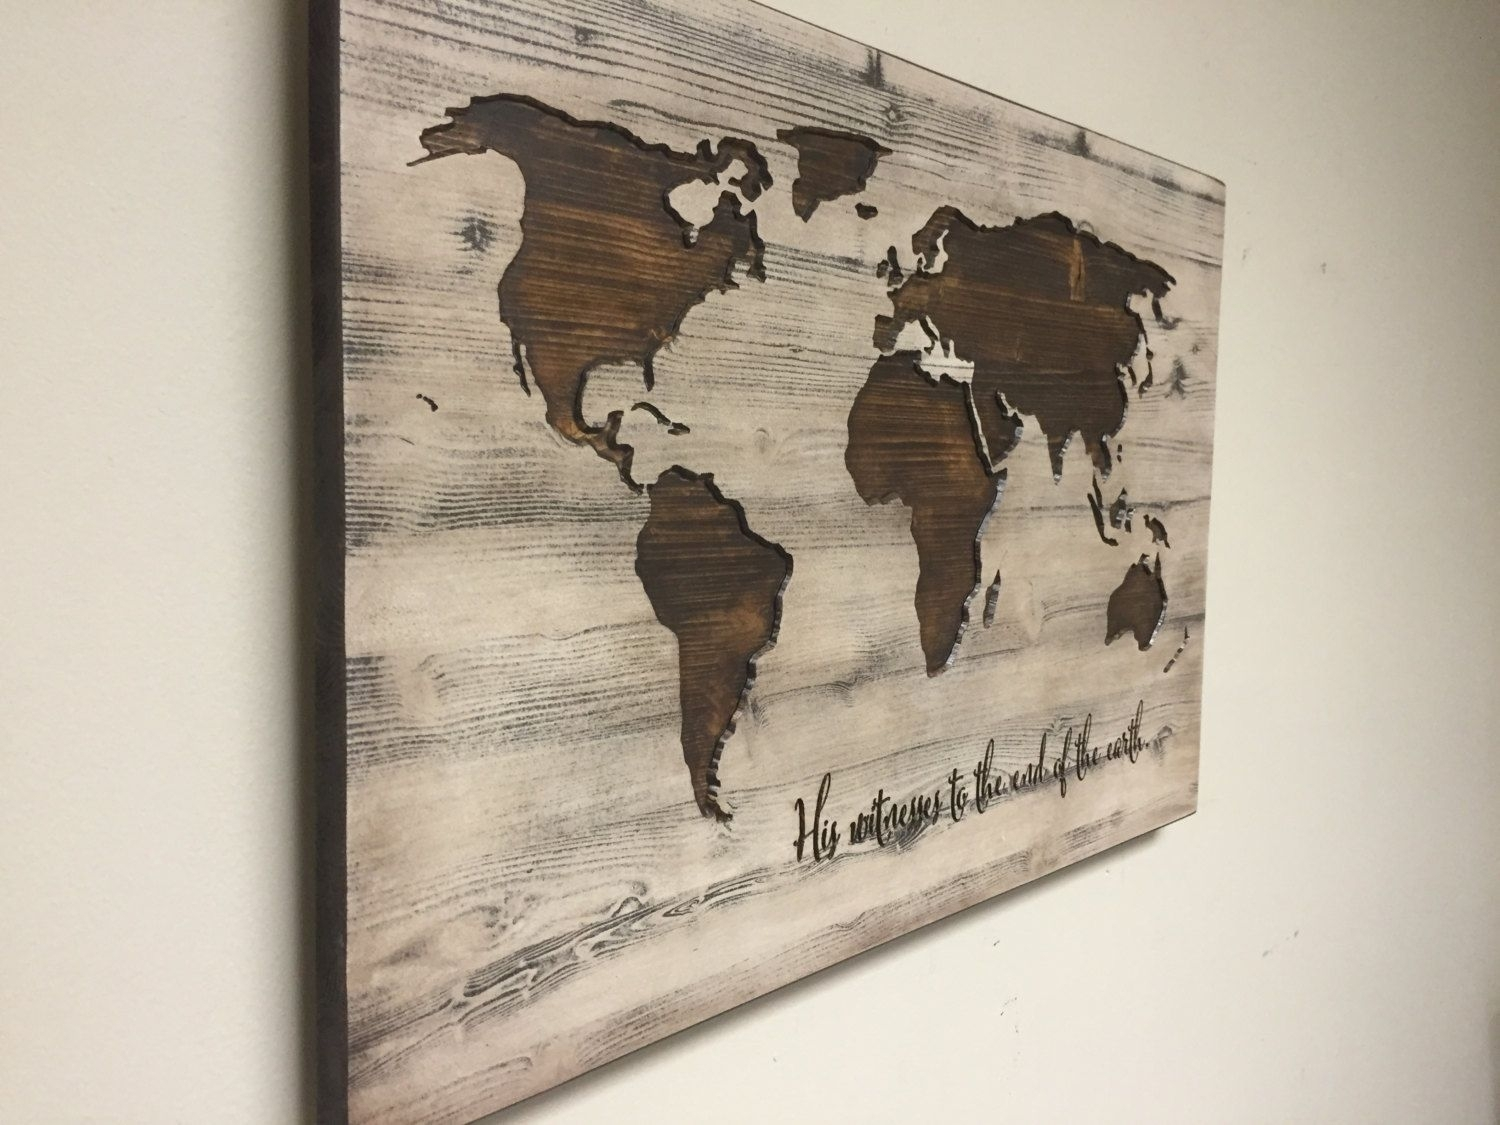 World Map Wall Art, Spiritual, Vintage Carved Wood Map, His Witness Throughout Best And Newest Wall Art World Map (View 17 of 20)